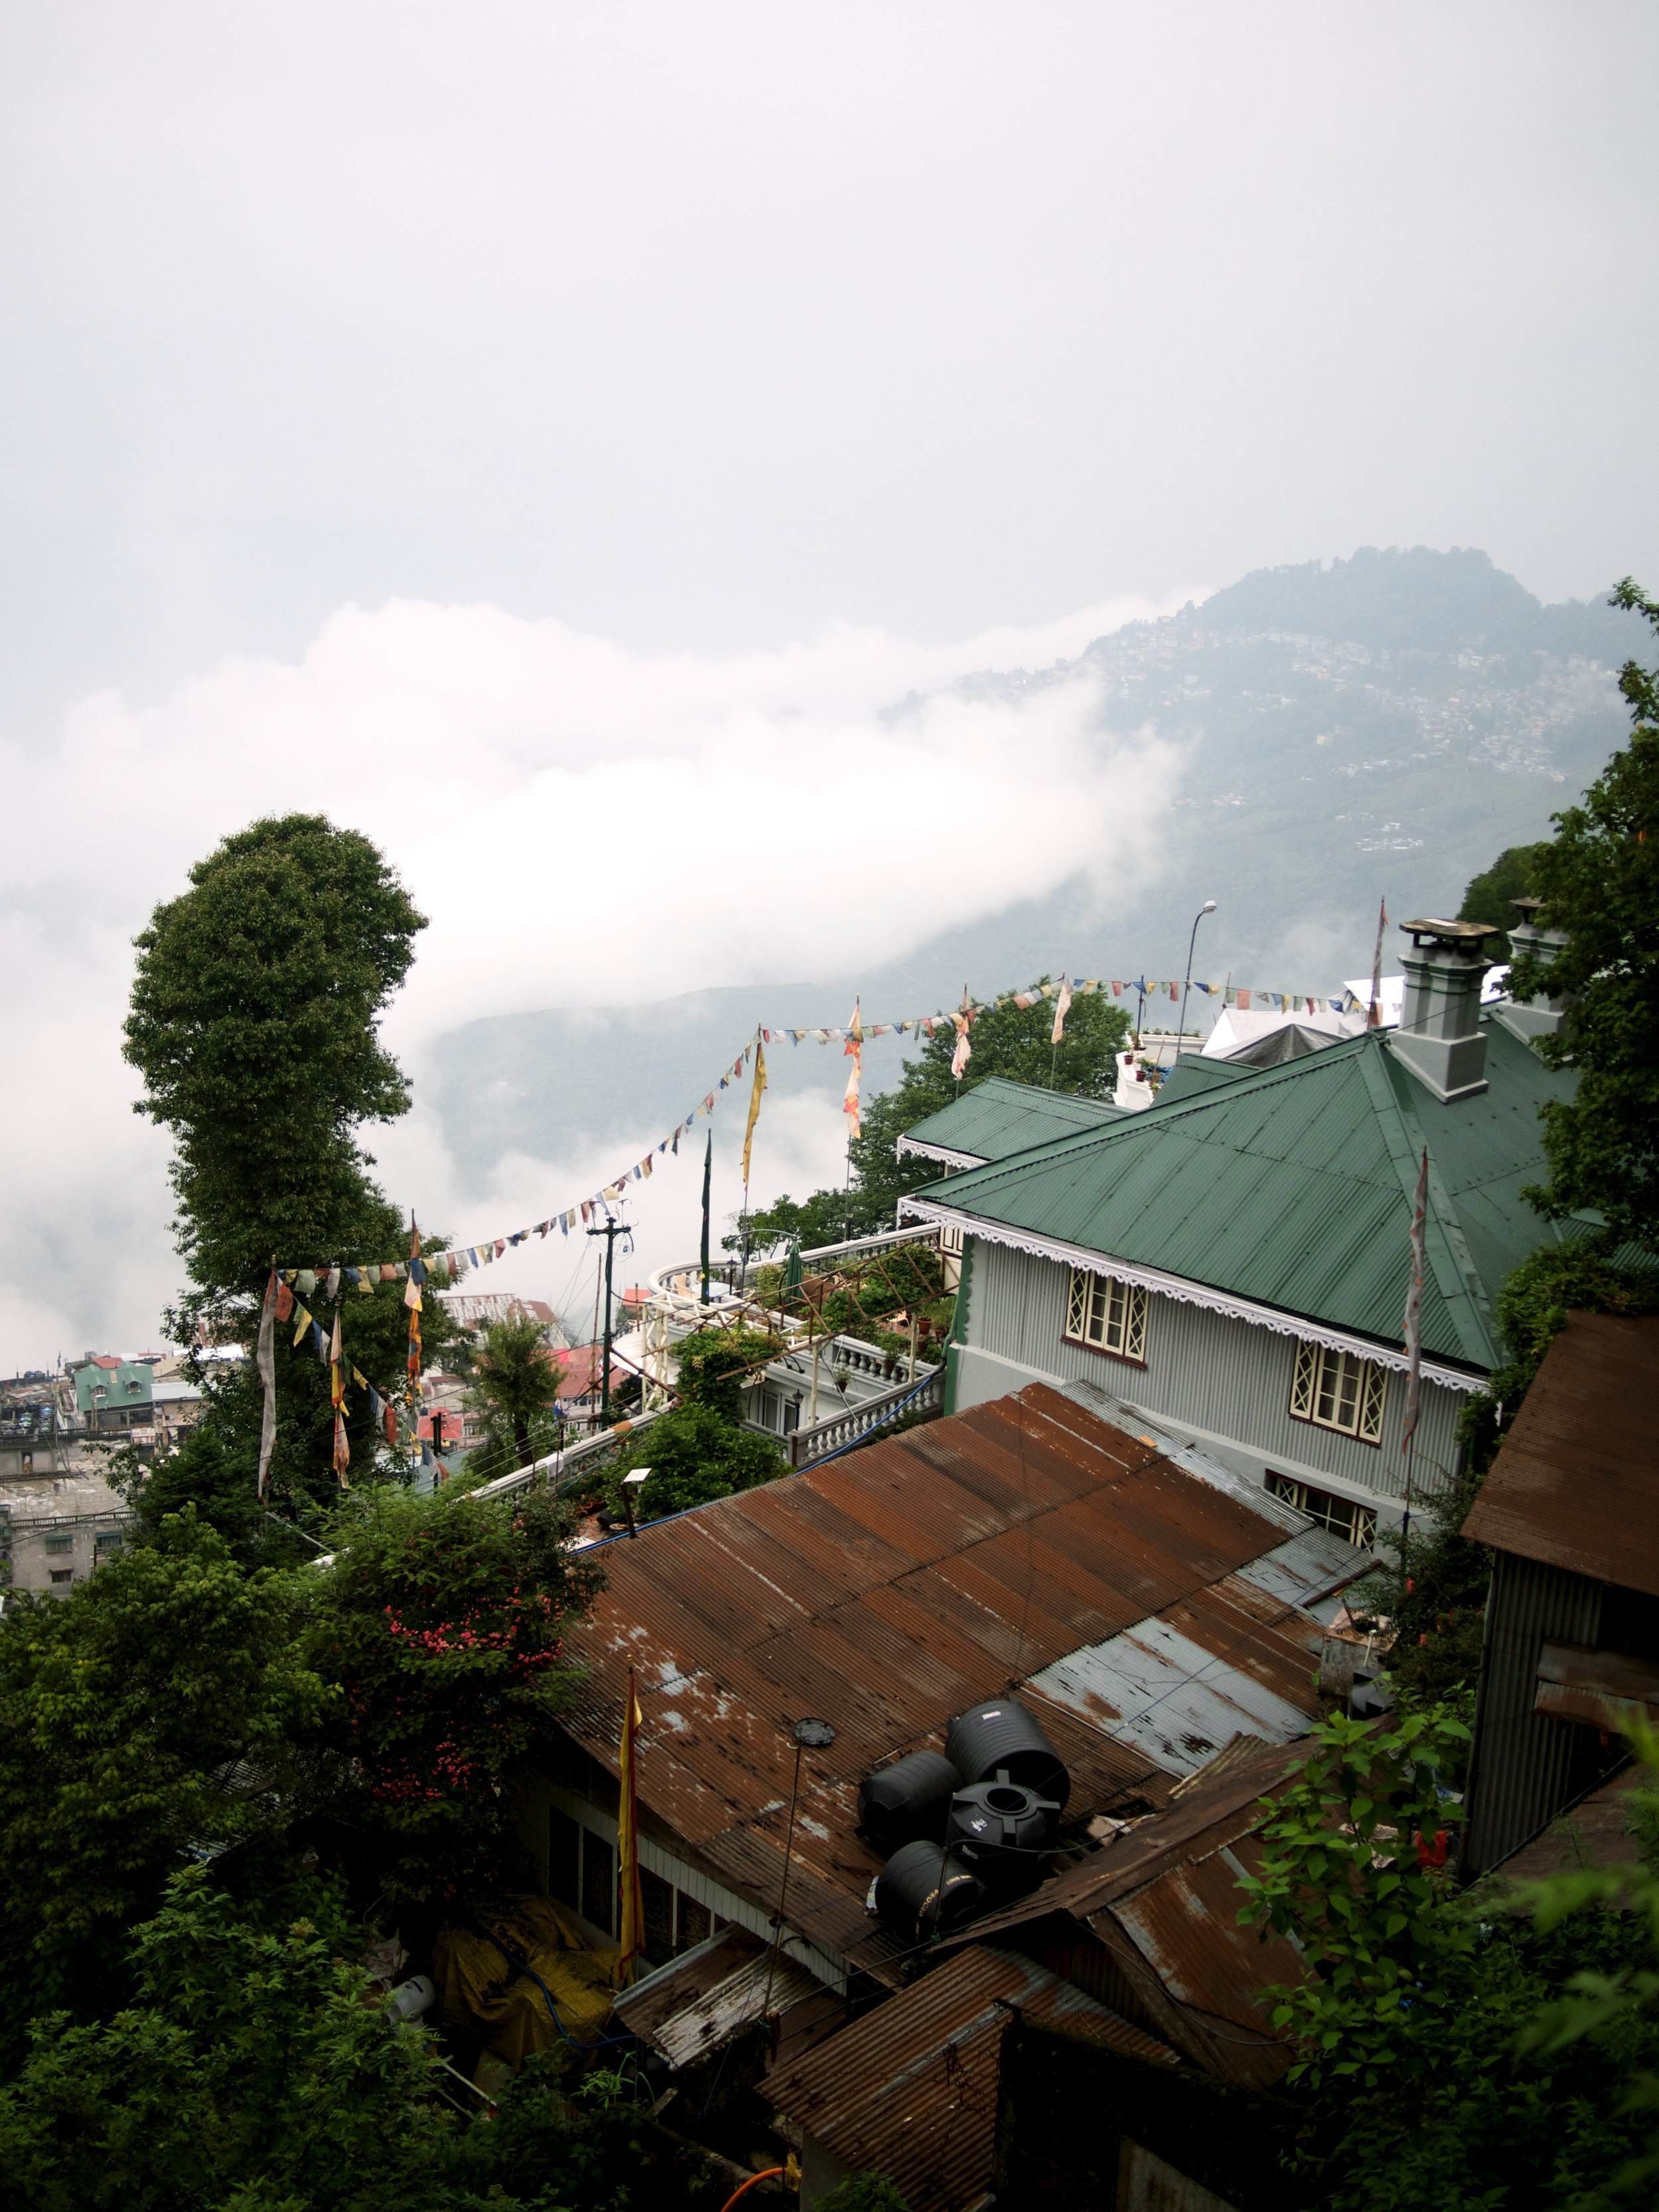 Darjeeling. I'll post more pictures later, but the internet is very slow up here...